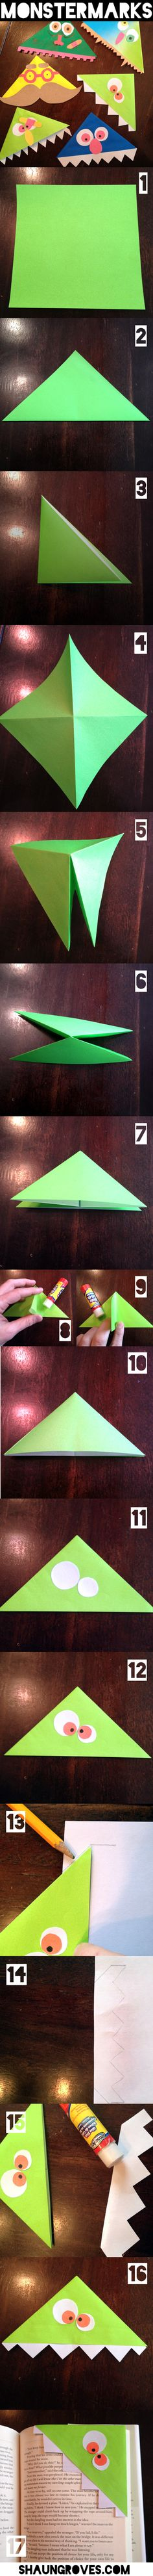 these are awesome... but dang!!!  too so many steps involved!  Monstermarks – Kid Craft Tutorial Preschool Crafts, Craft Activities, Origami Monster Bookmark, Bookmark Craft, Bookmarks For Kids, Corner Bookmarks, Kids Book Marks, Crafts To Do, Easy Crafts For Kids